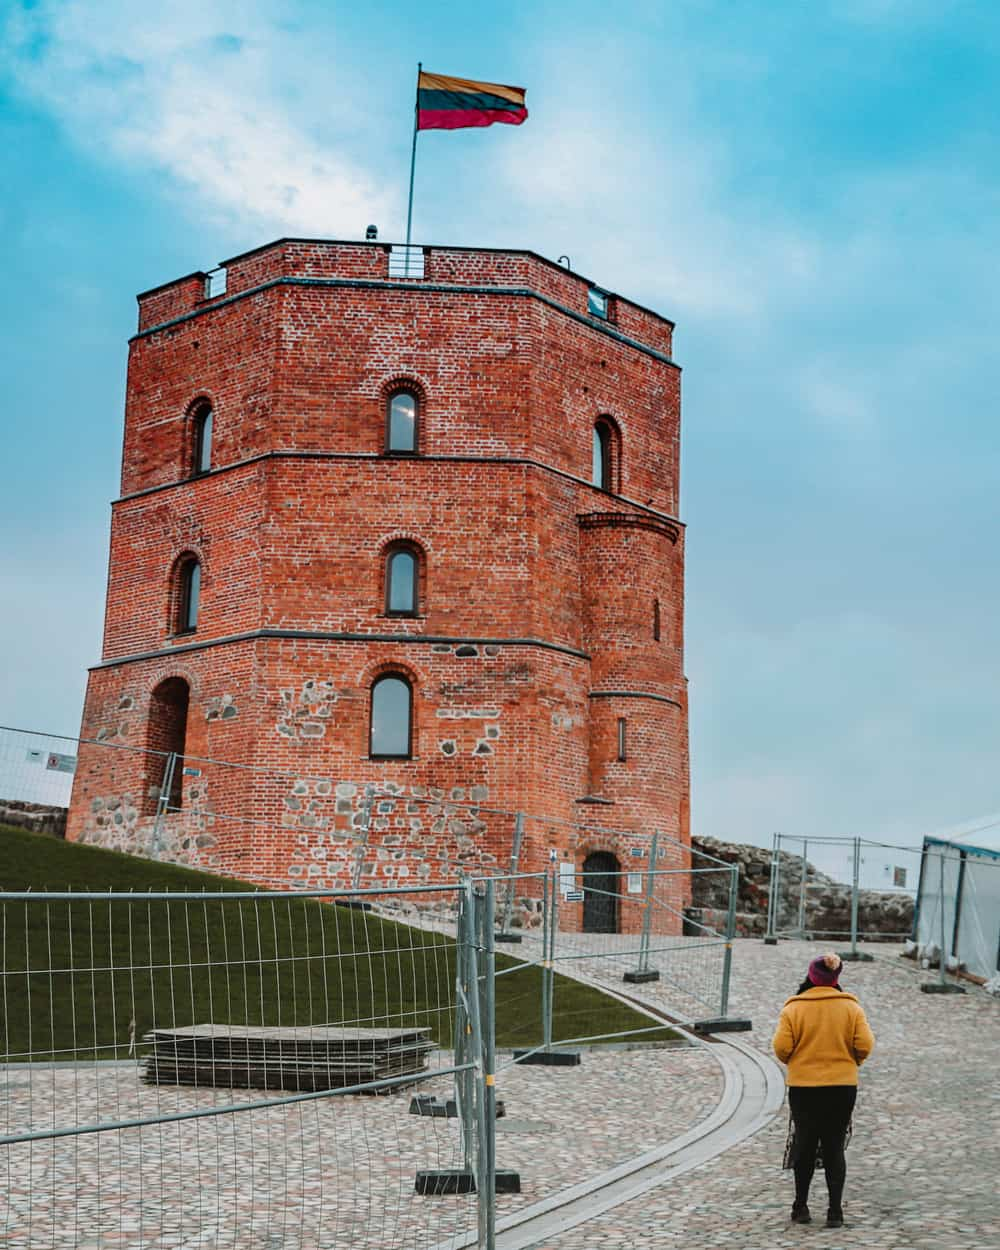 Gediminas Tower of the Upper Castle